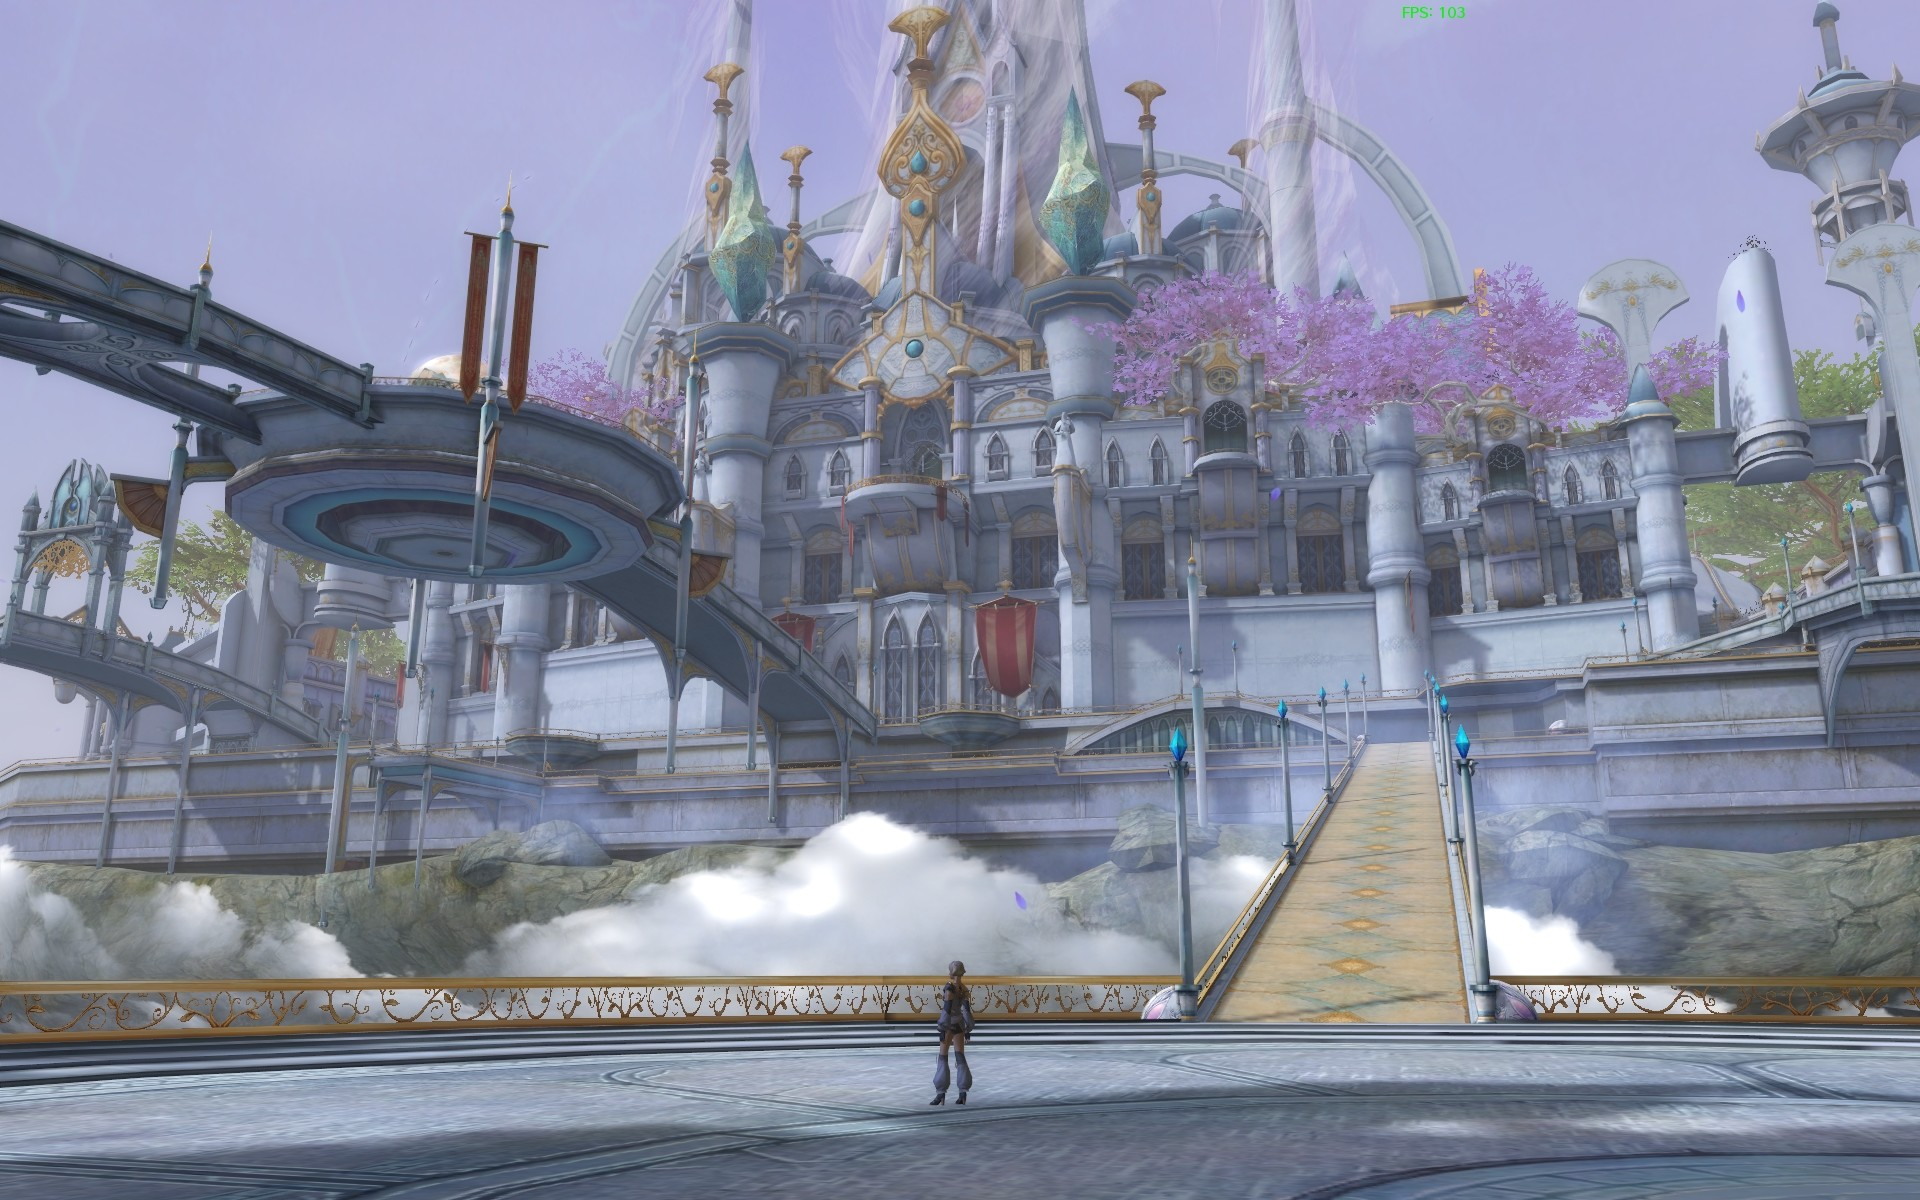 Aion - All this at 103fps, not too shabby